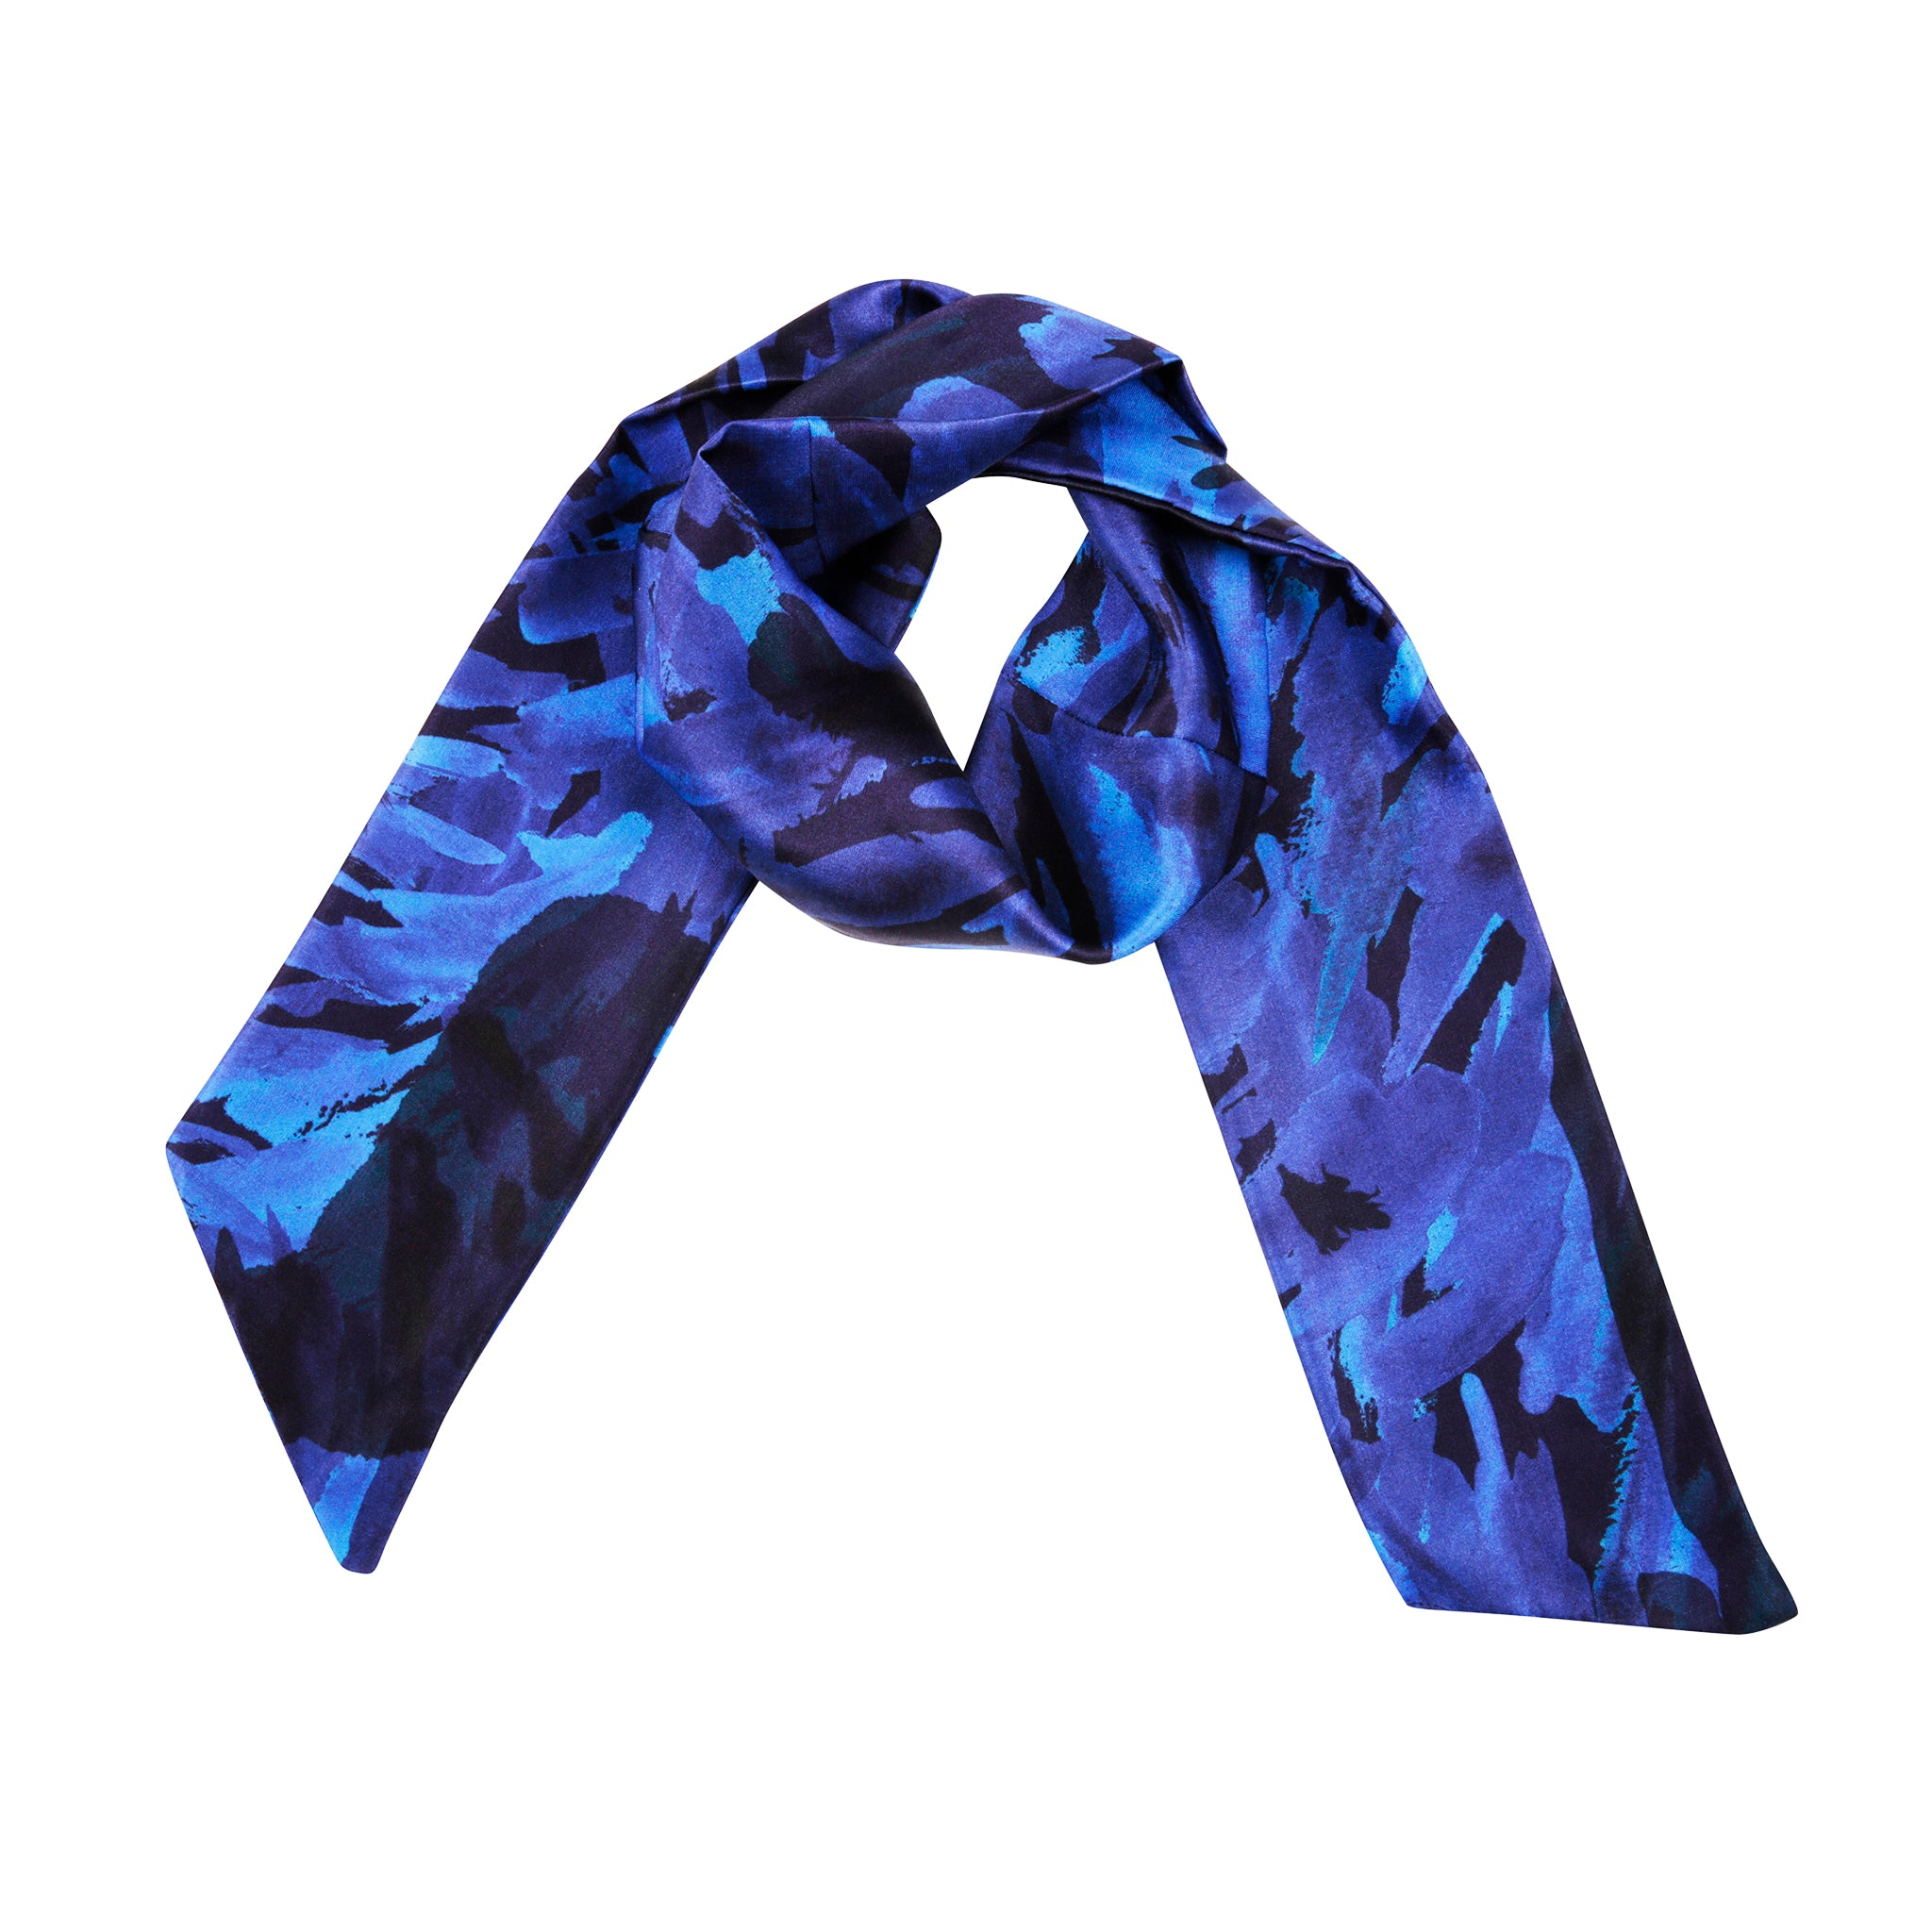 Water Neck Scarf in Blue